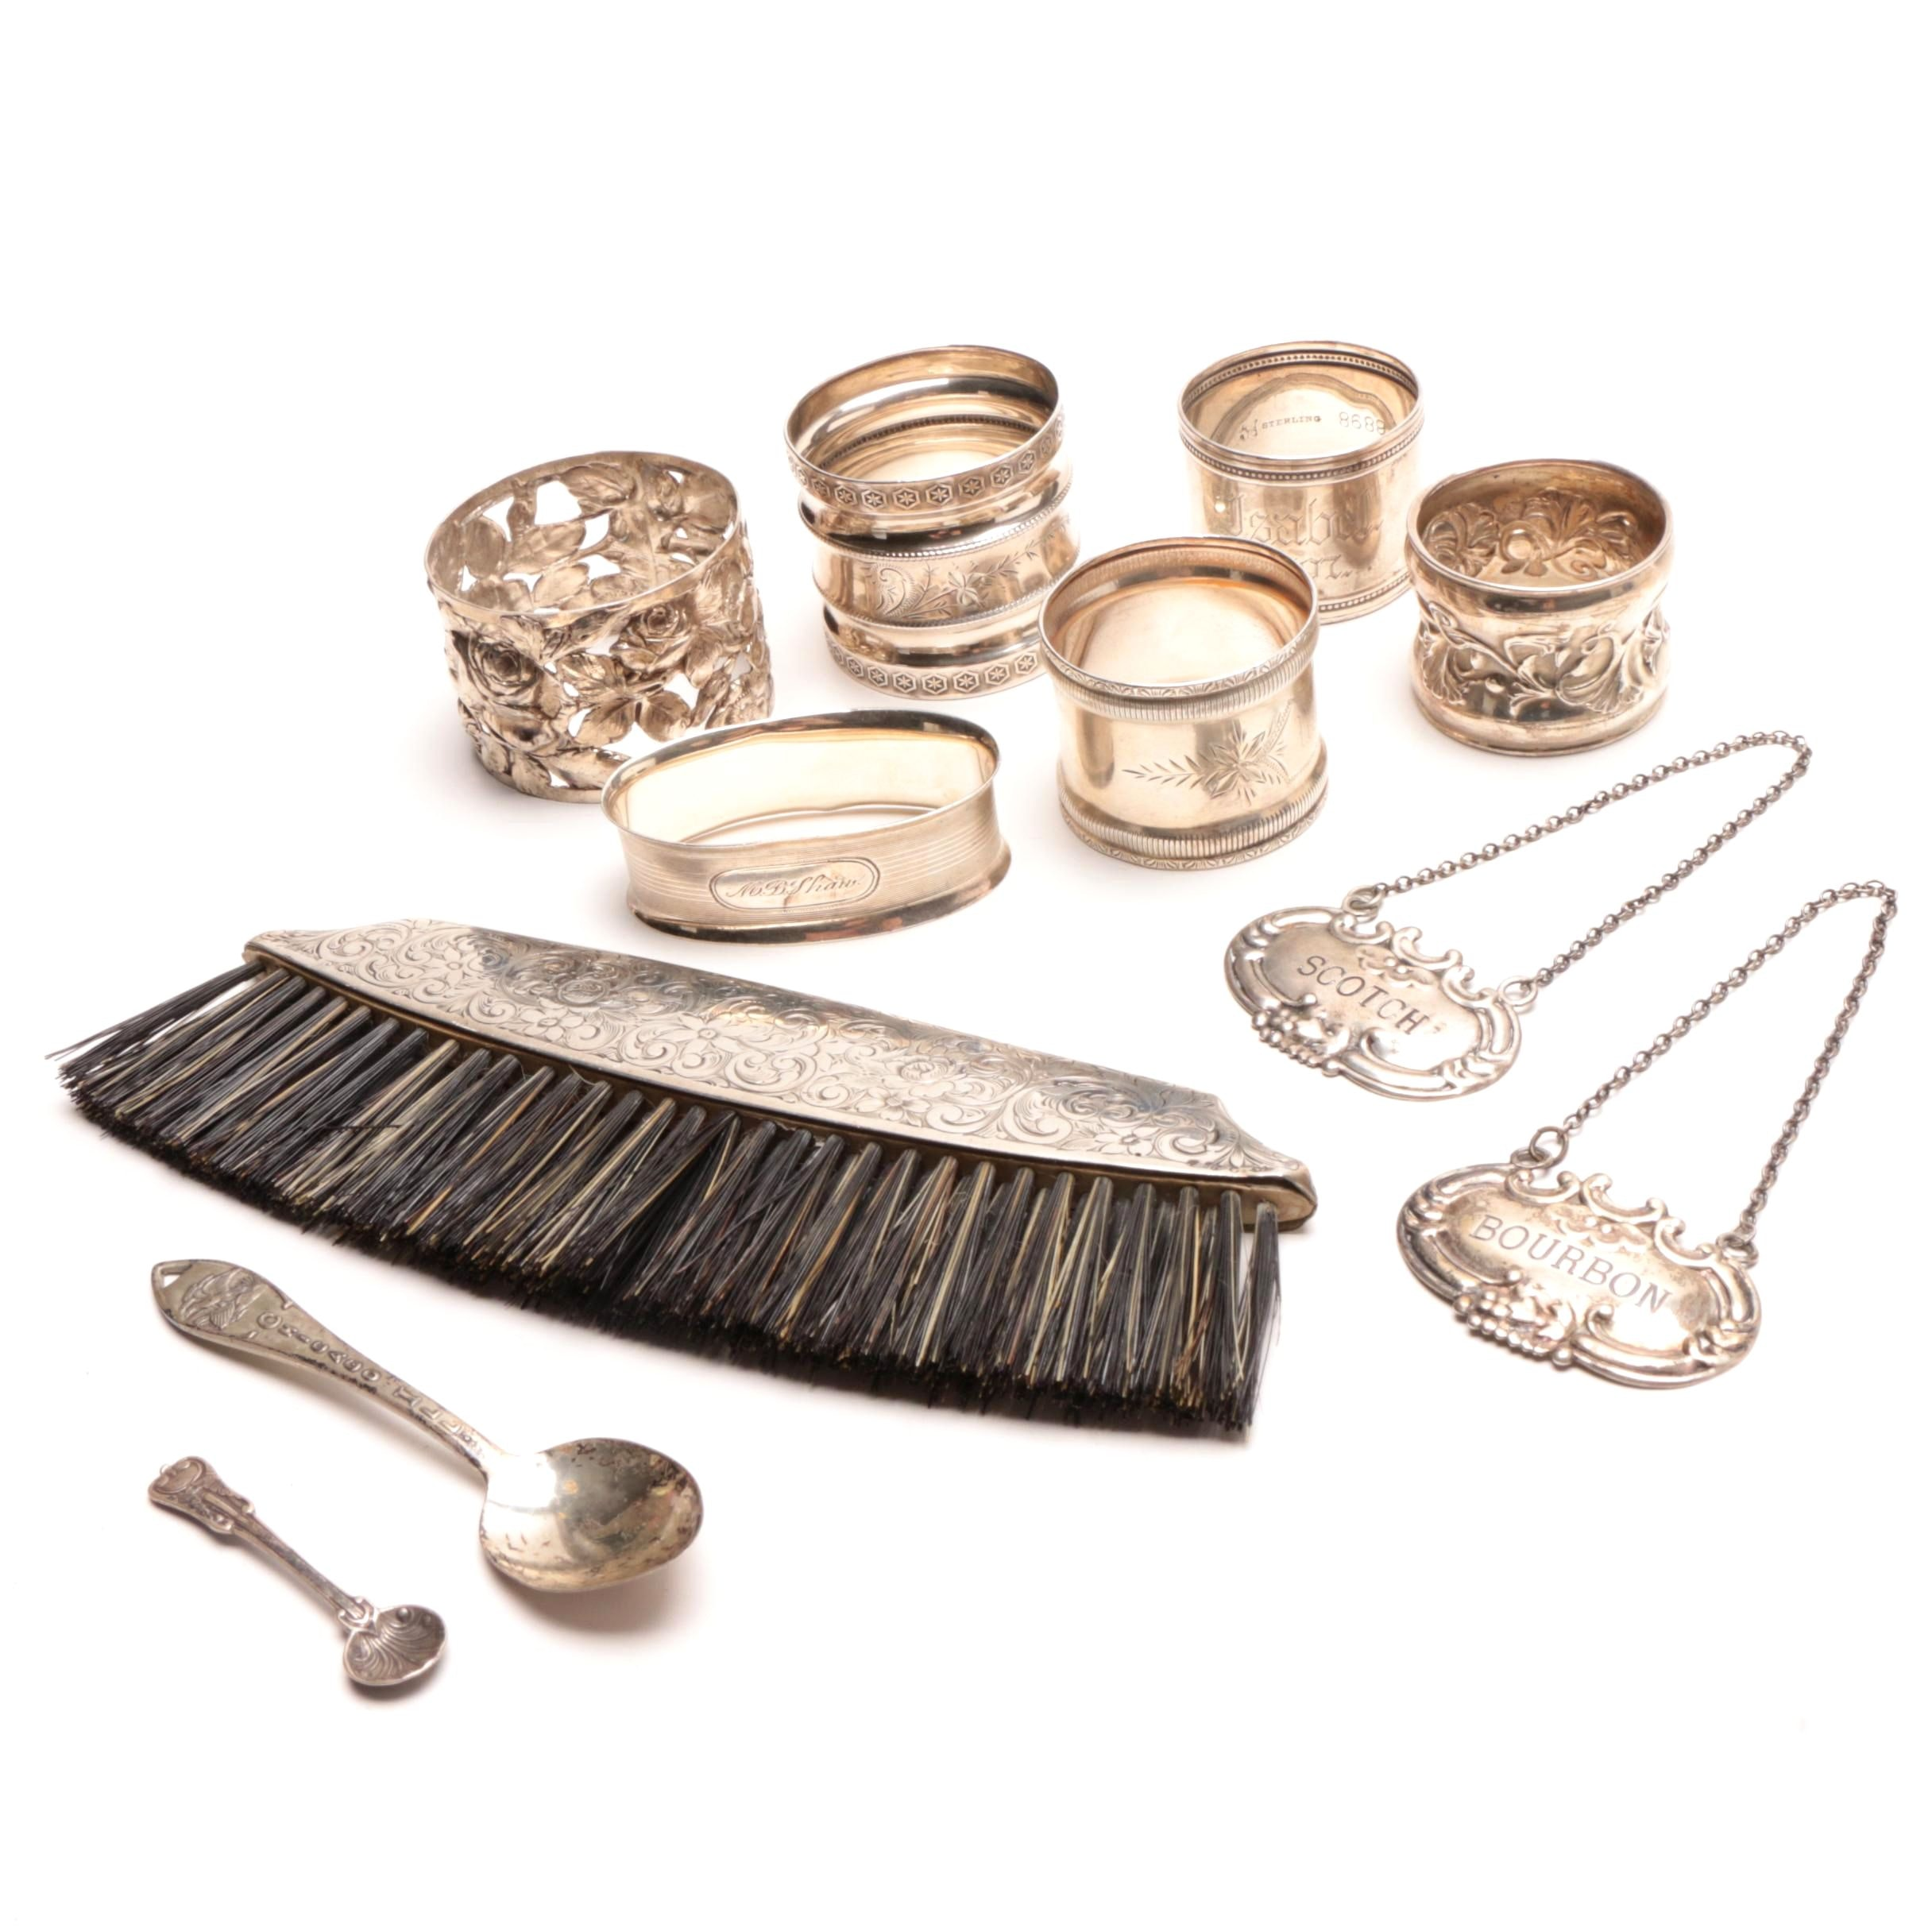 Sterling Silver Napkin Rings and Spoons including Towle, Gorham and Wallace